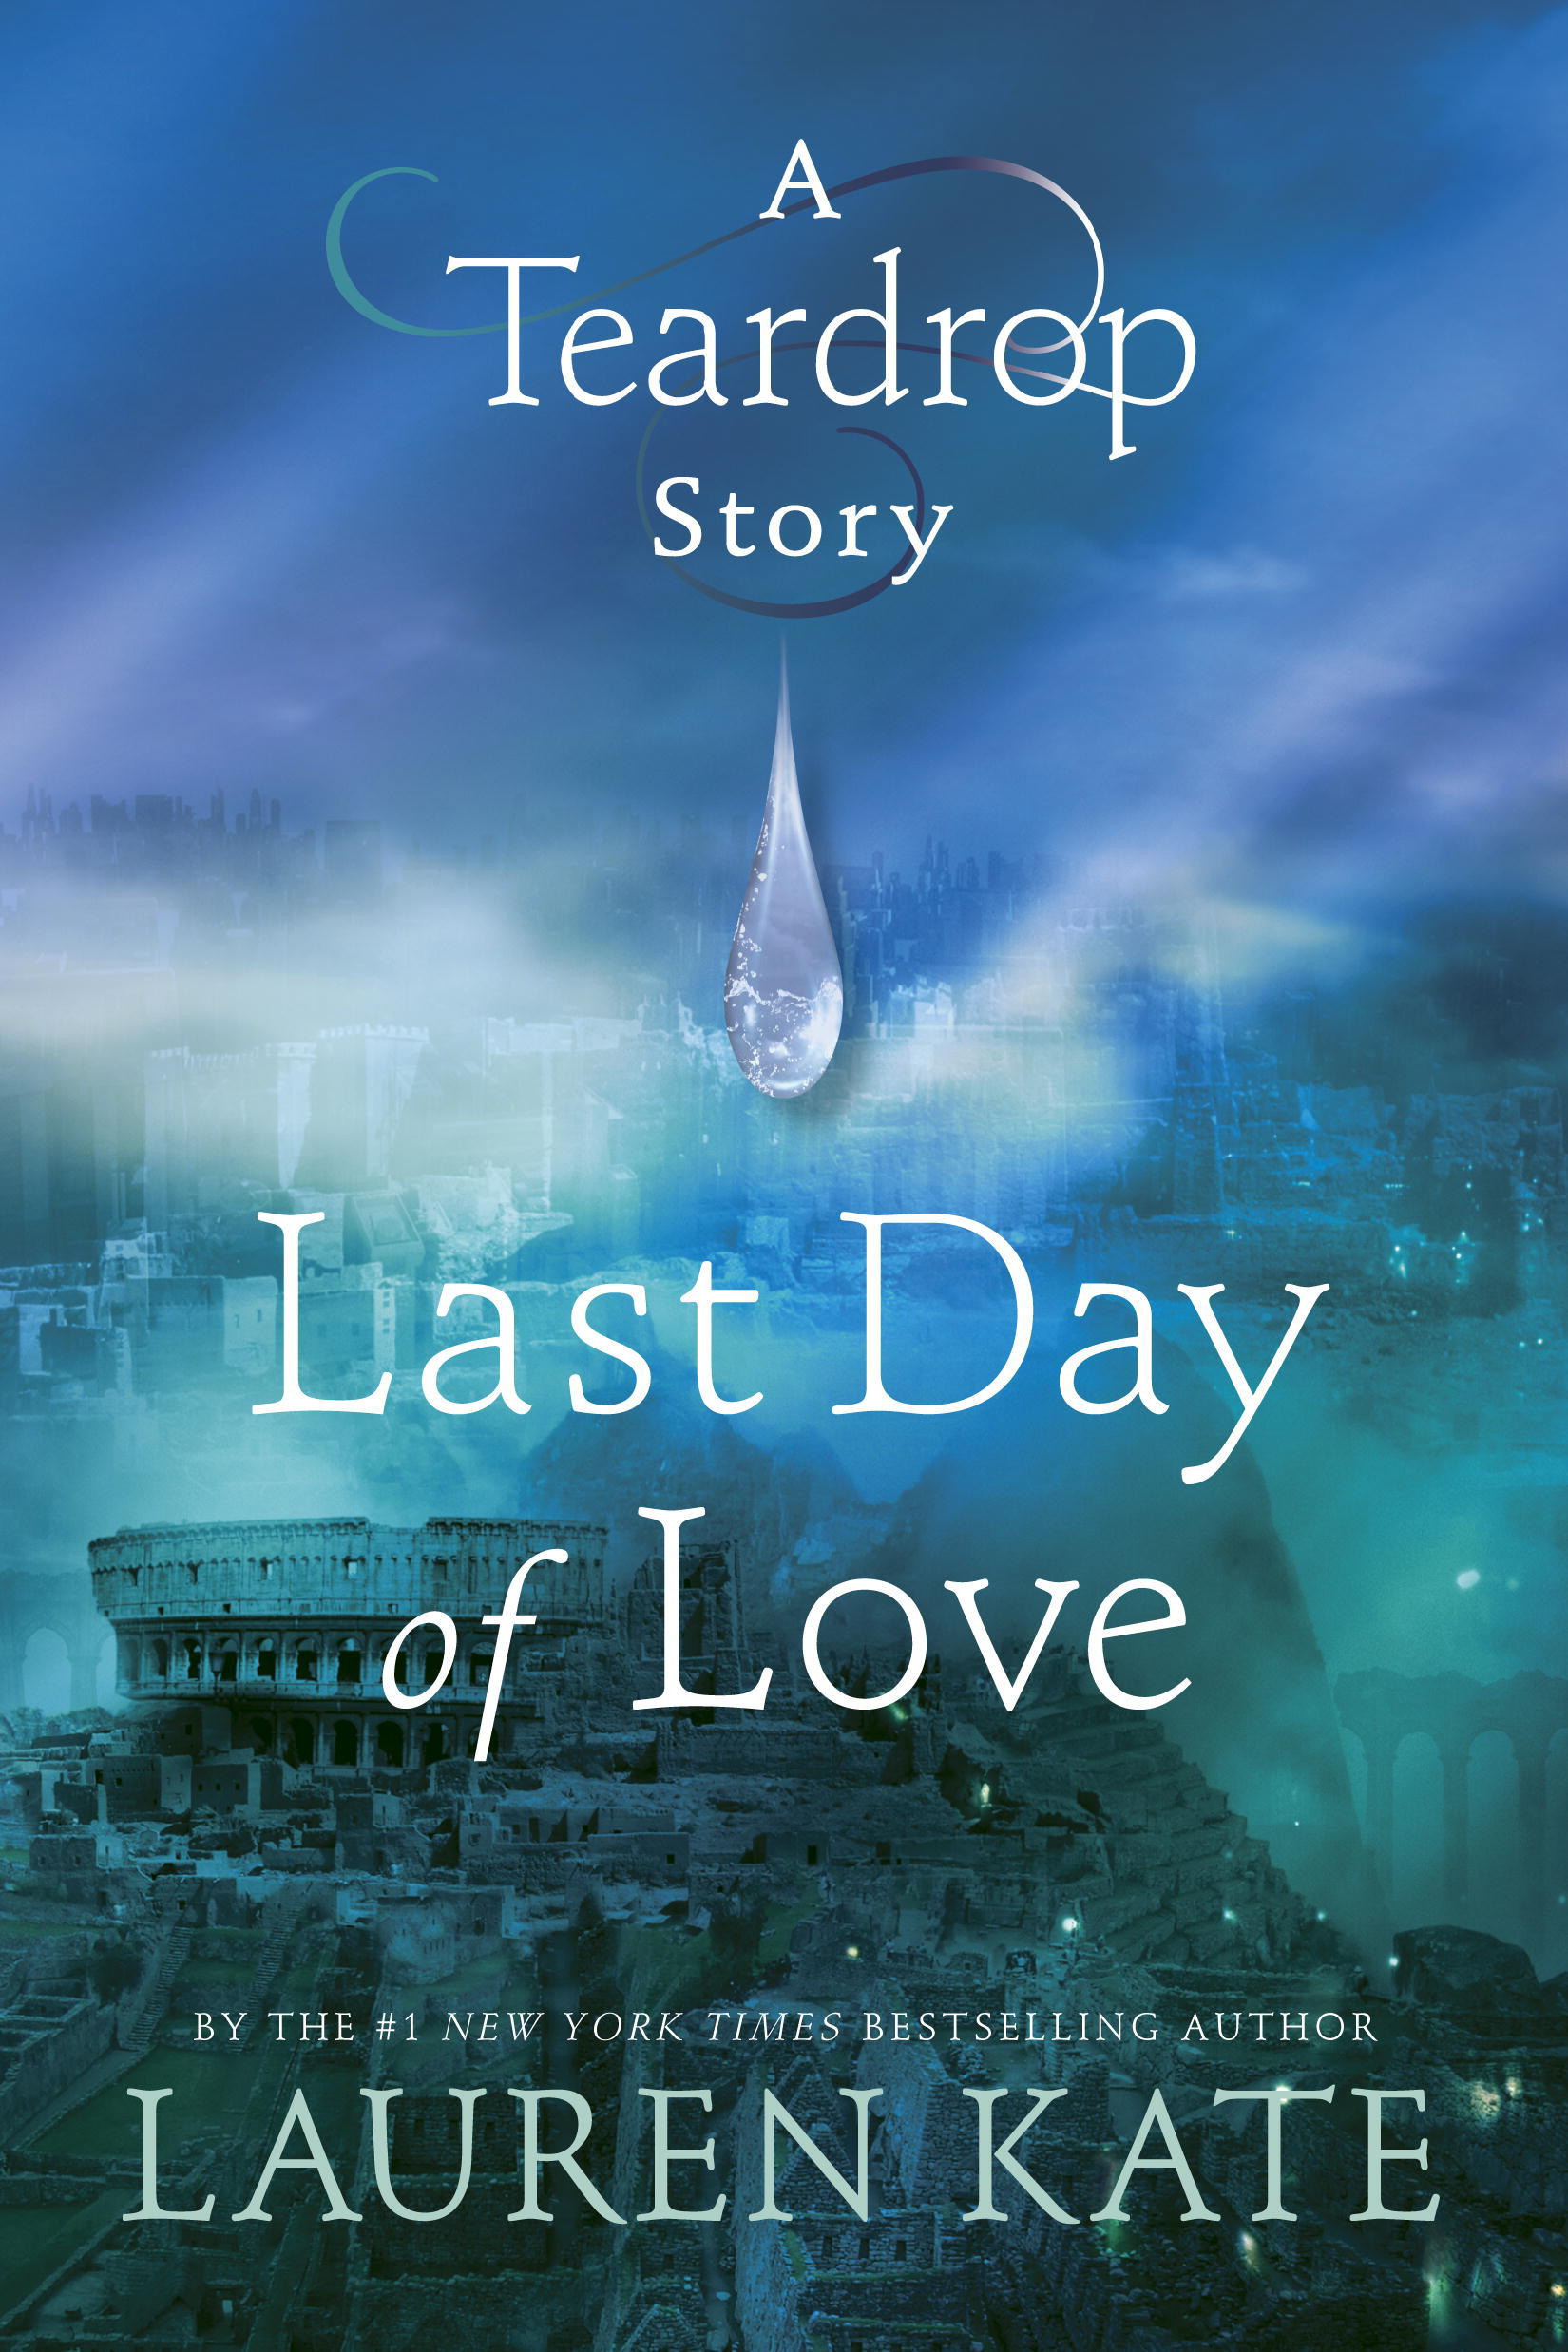 Last Day of Love A Teardrop Story